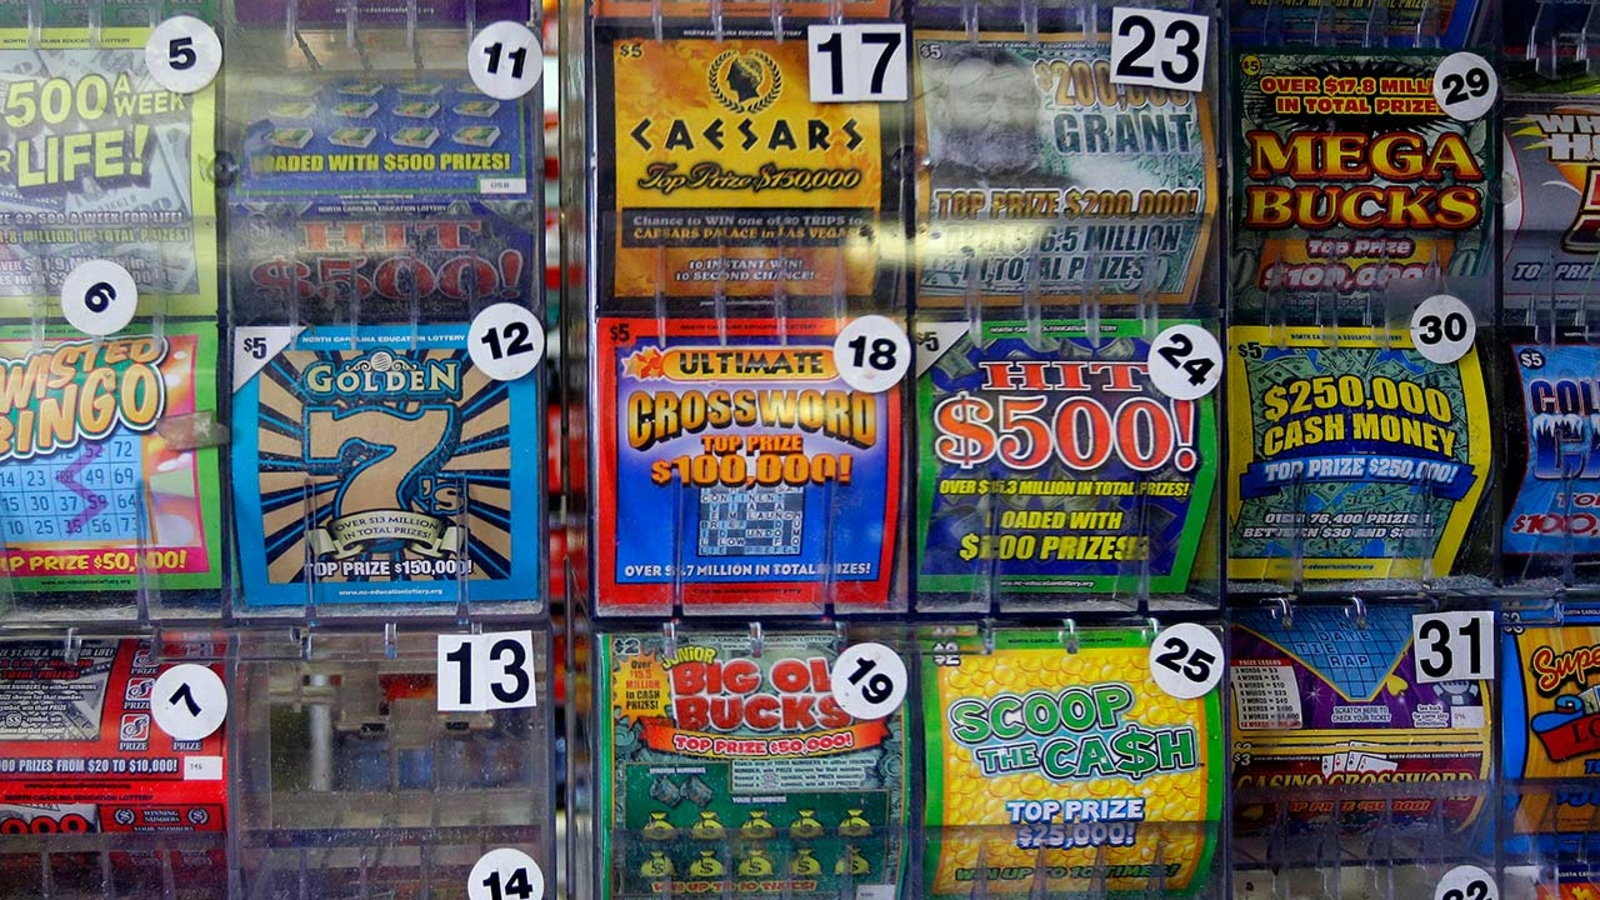 Man sues lottery for not honoring $5M ticket